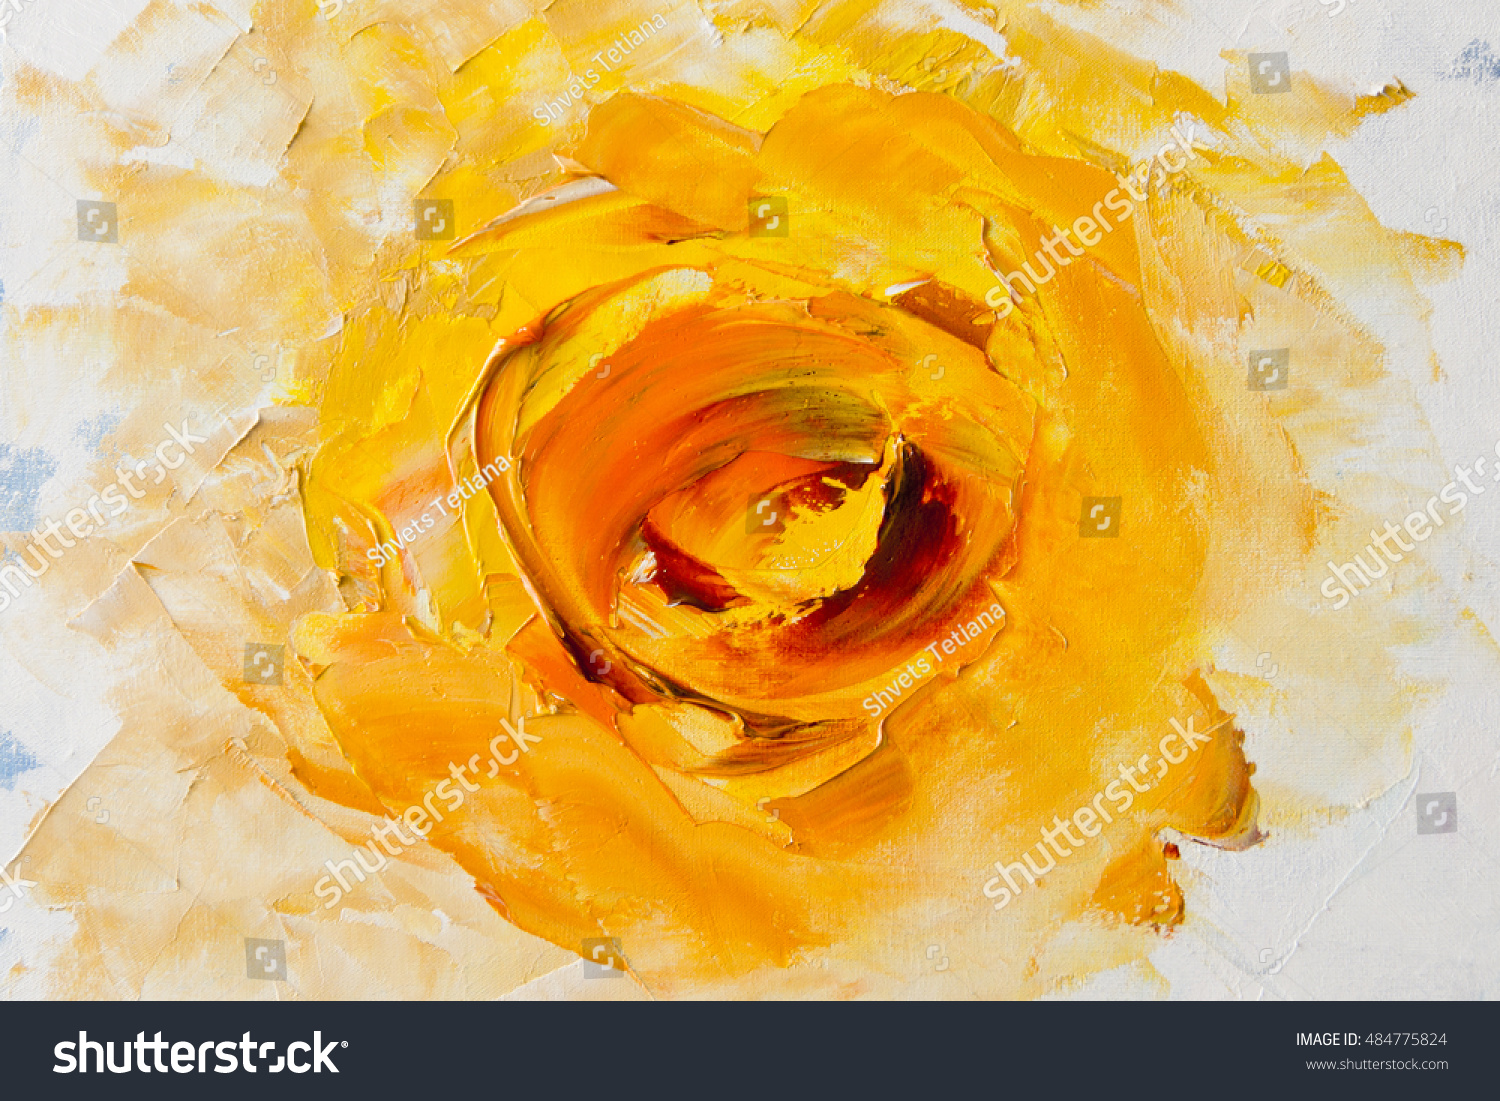 Art Oil Painting Picture Fantasy Yellow Flower Stock Illustration